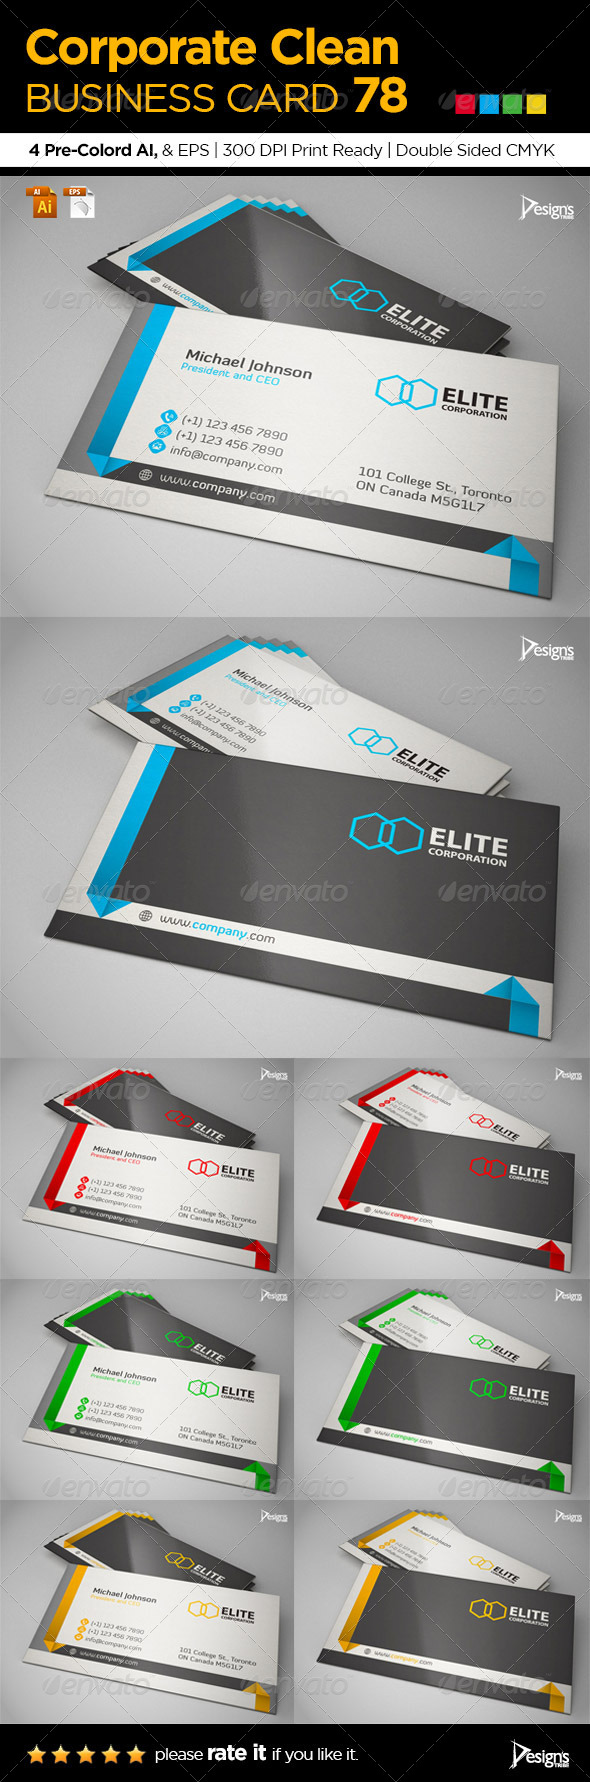 Corporate Clean Business Card 78 - Business Cards Print Templates